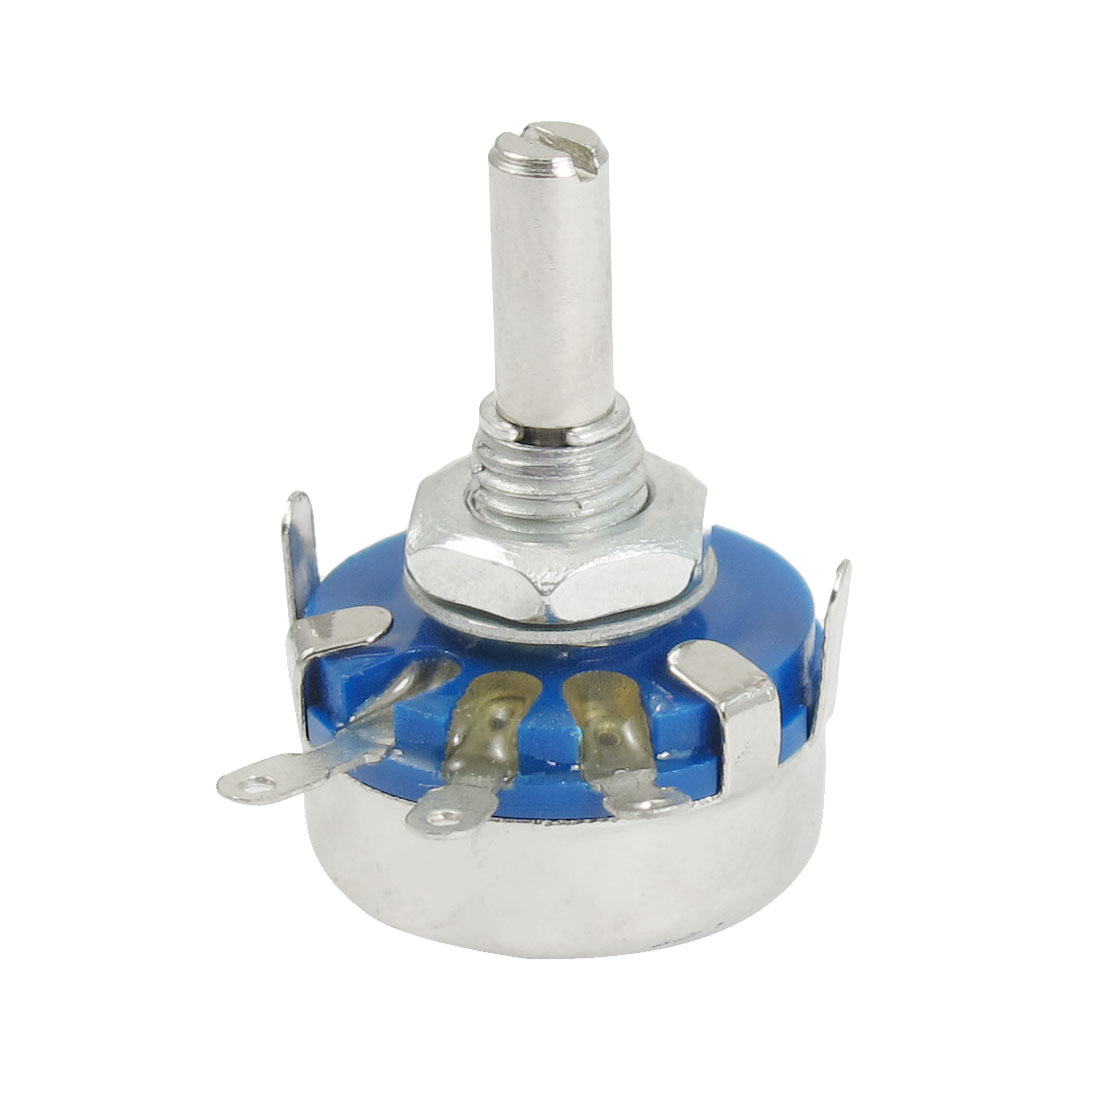 WH5-1A 1K ohm 4mm Round Shaft Linear Taper Rotary Carbon Potentiometer